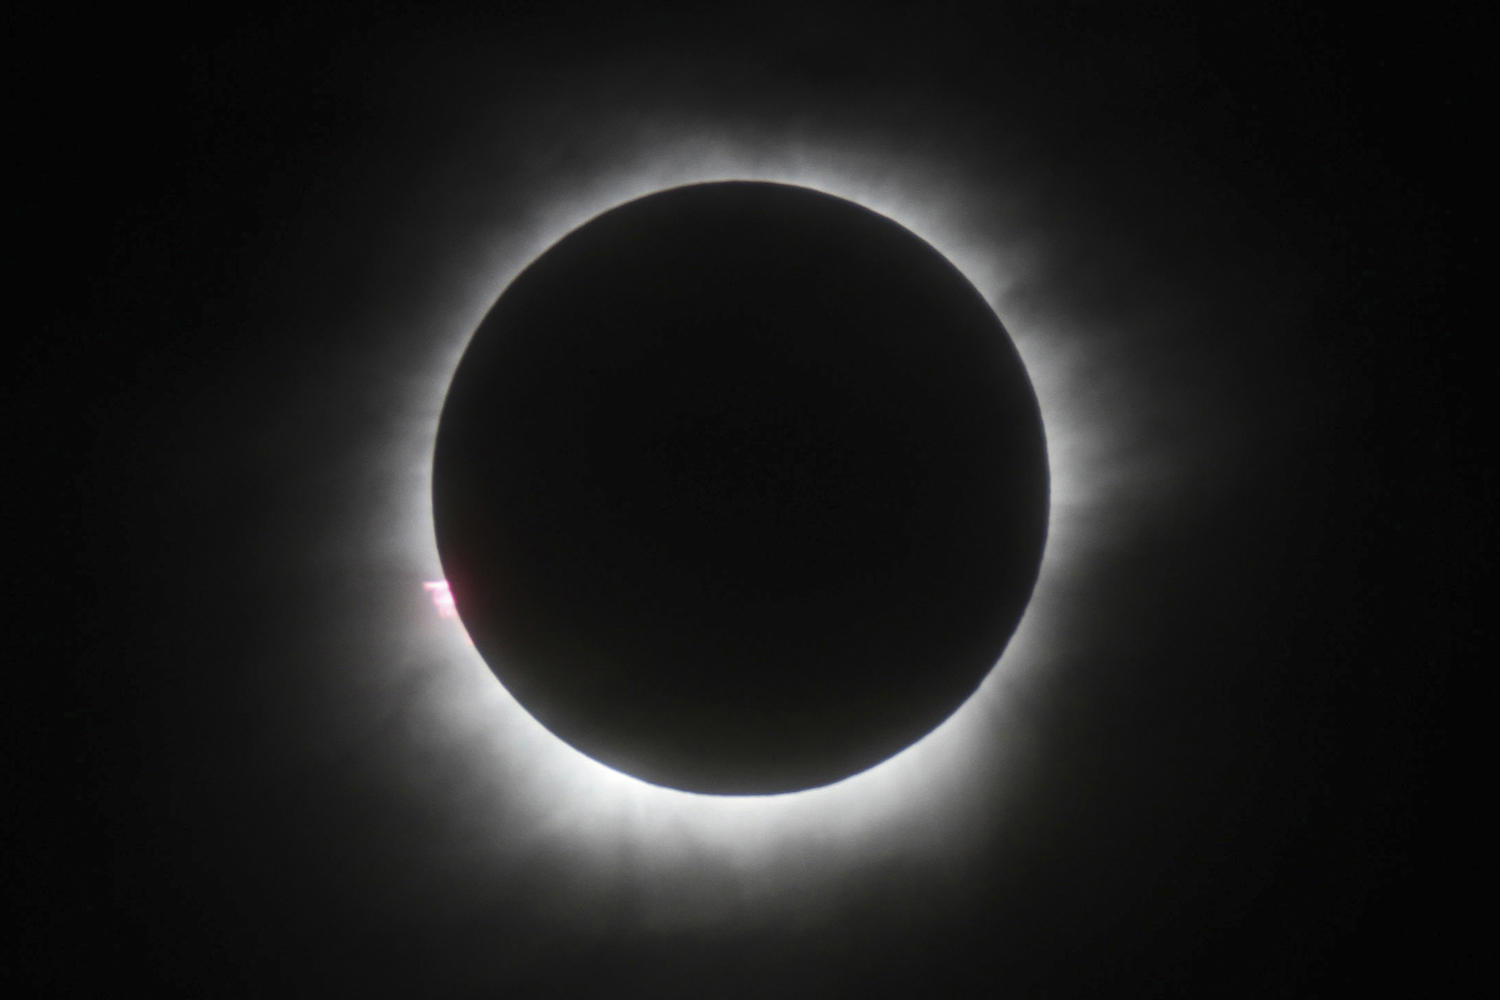 Total solar eclipse checklist: What you should watch out for